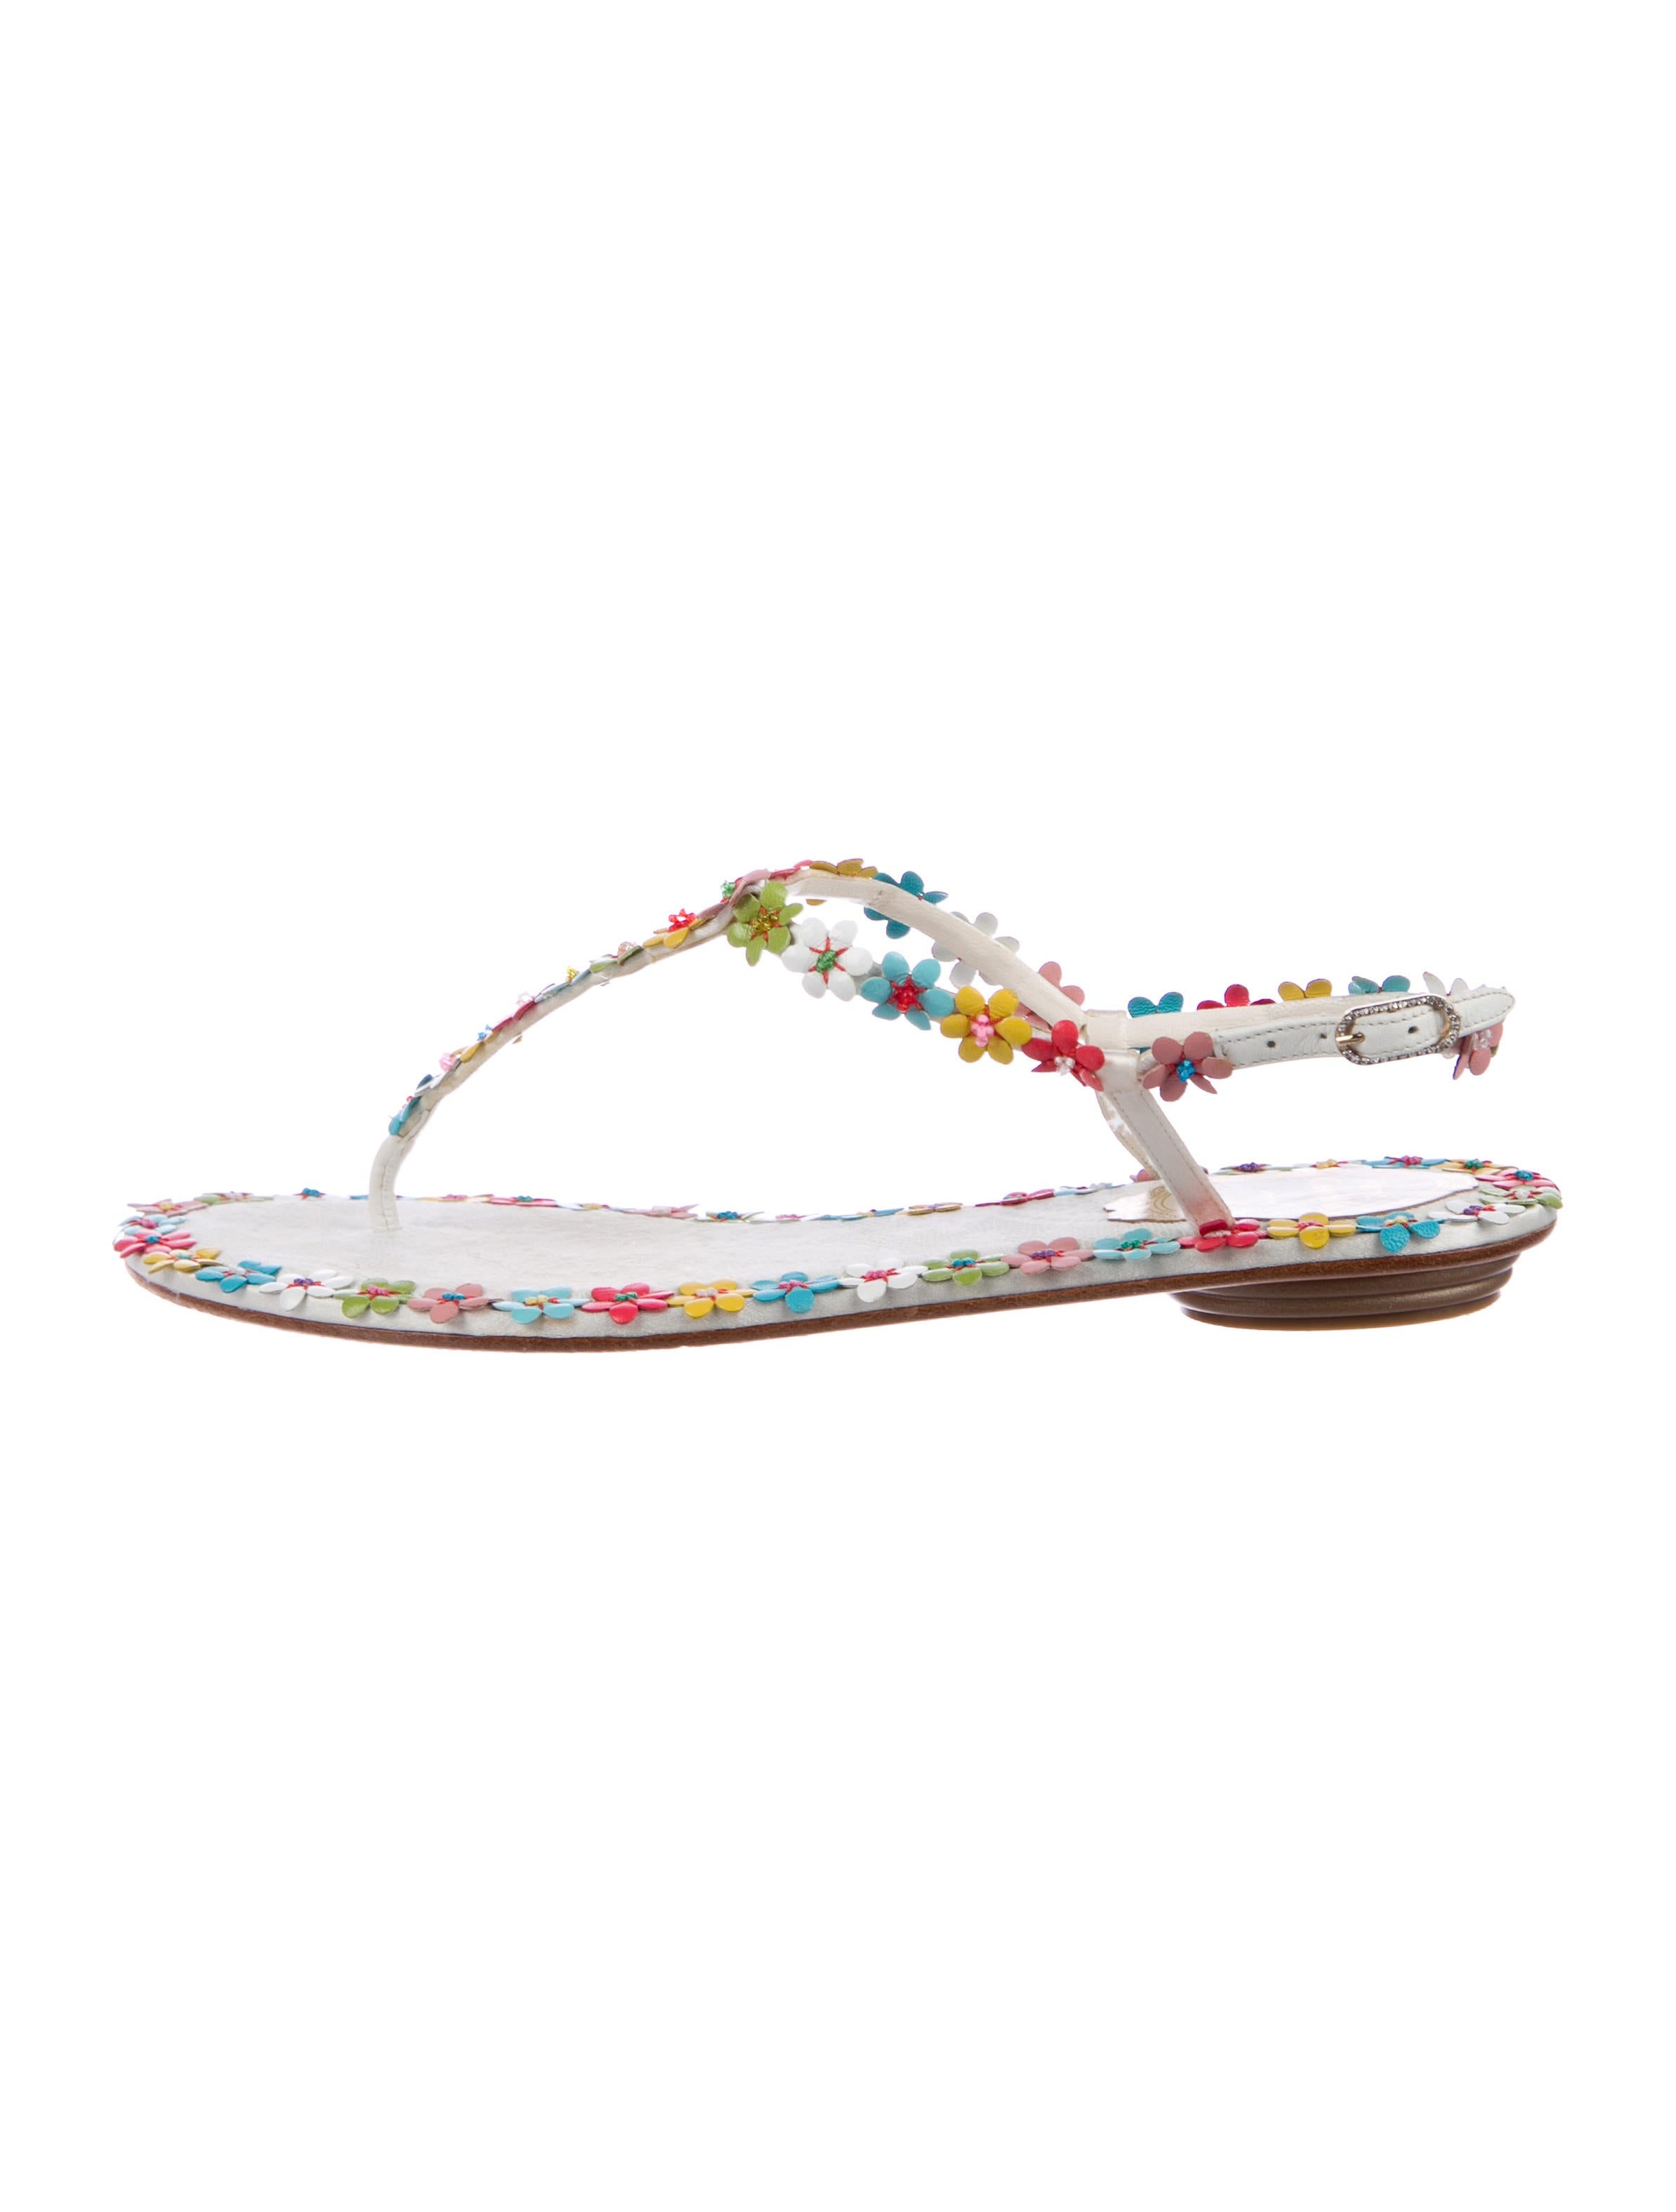 723c244e5bc978 Rene Caovilla Floral-Embellished Thong Sandals - Shoes - REC23084 ...